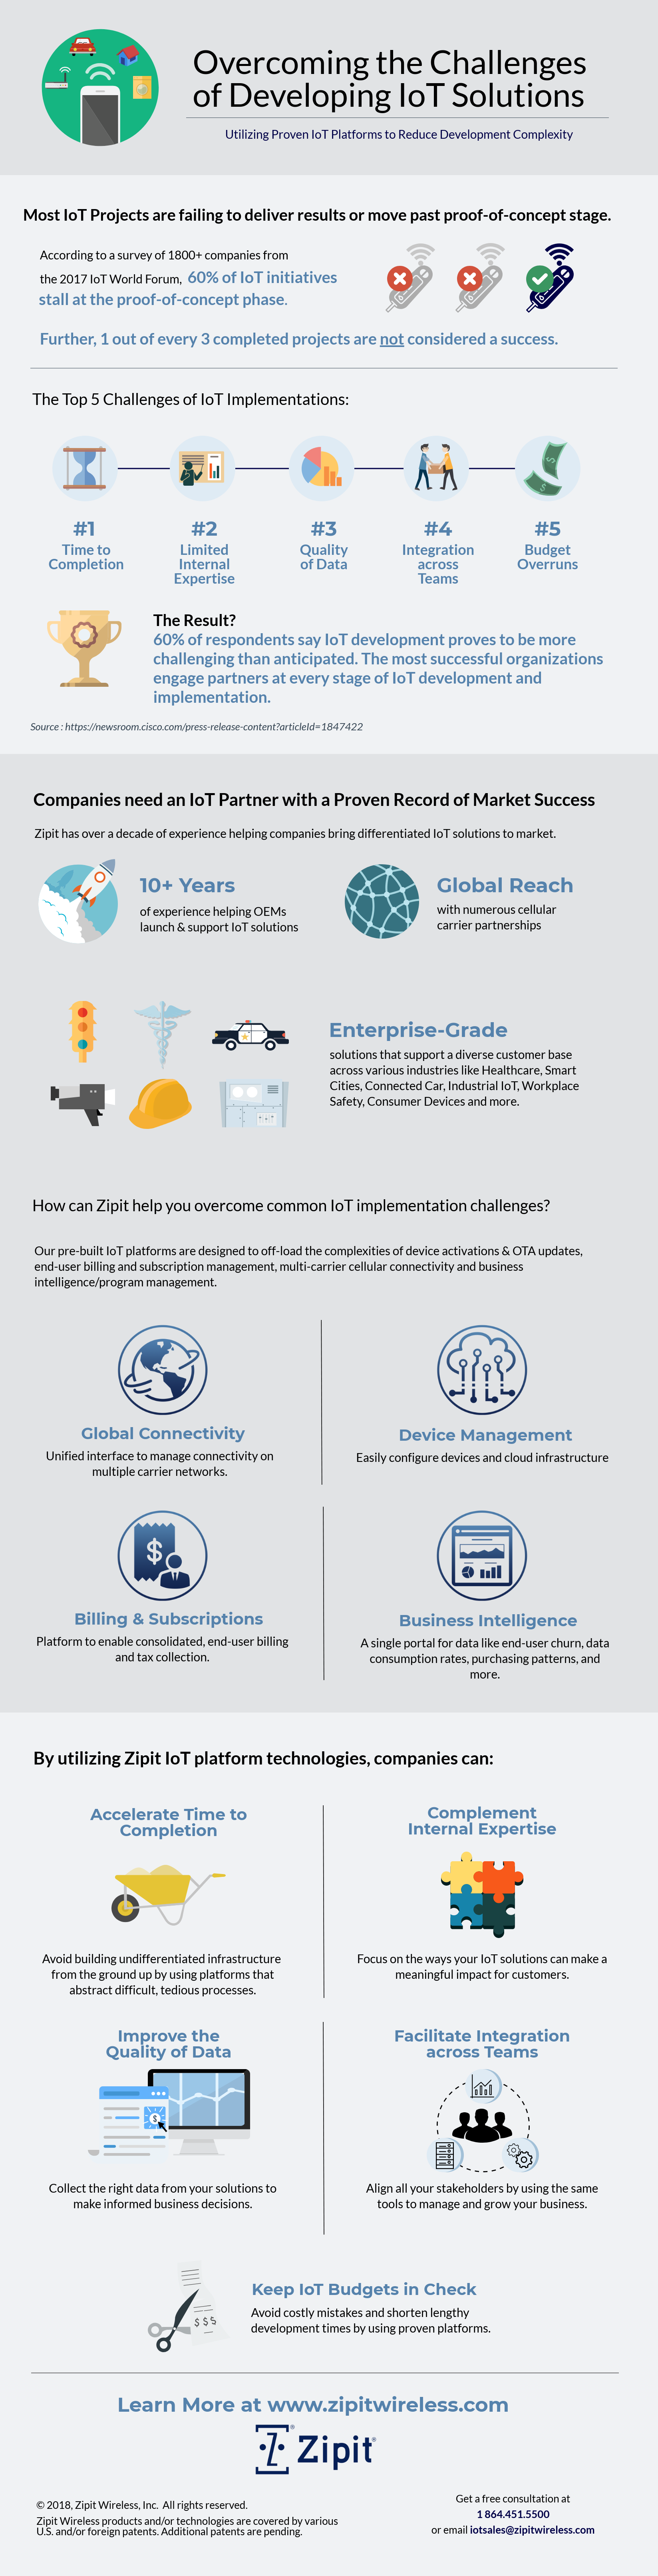 Overcoming IoT Development Challenges_infographic